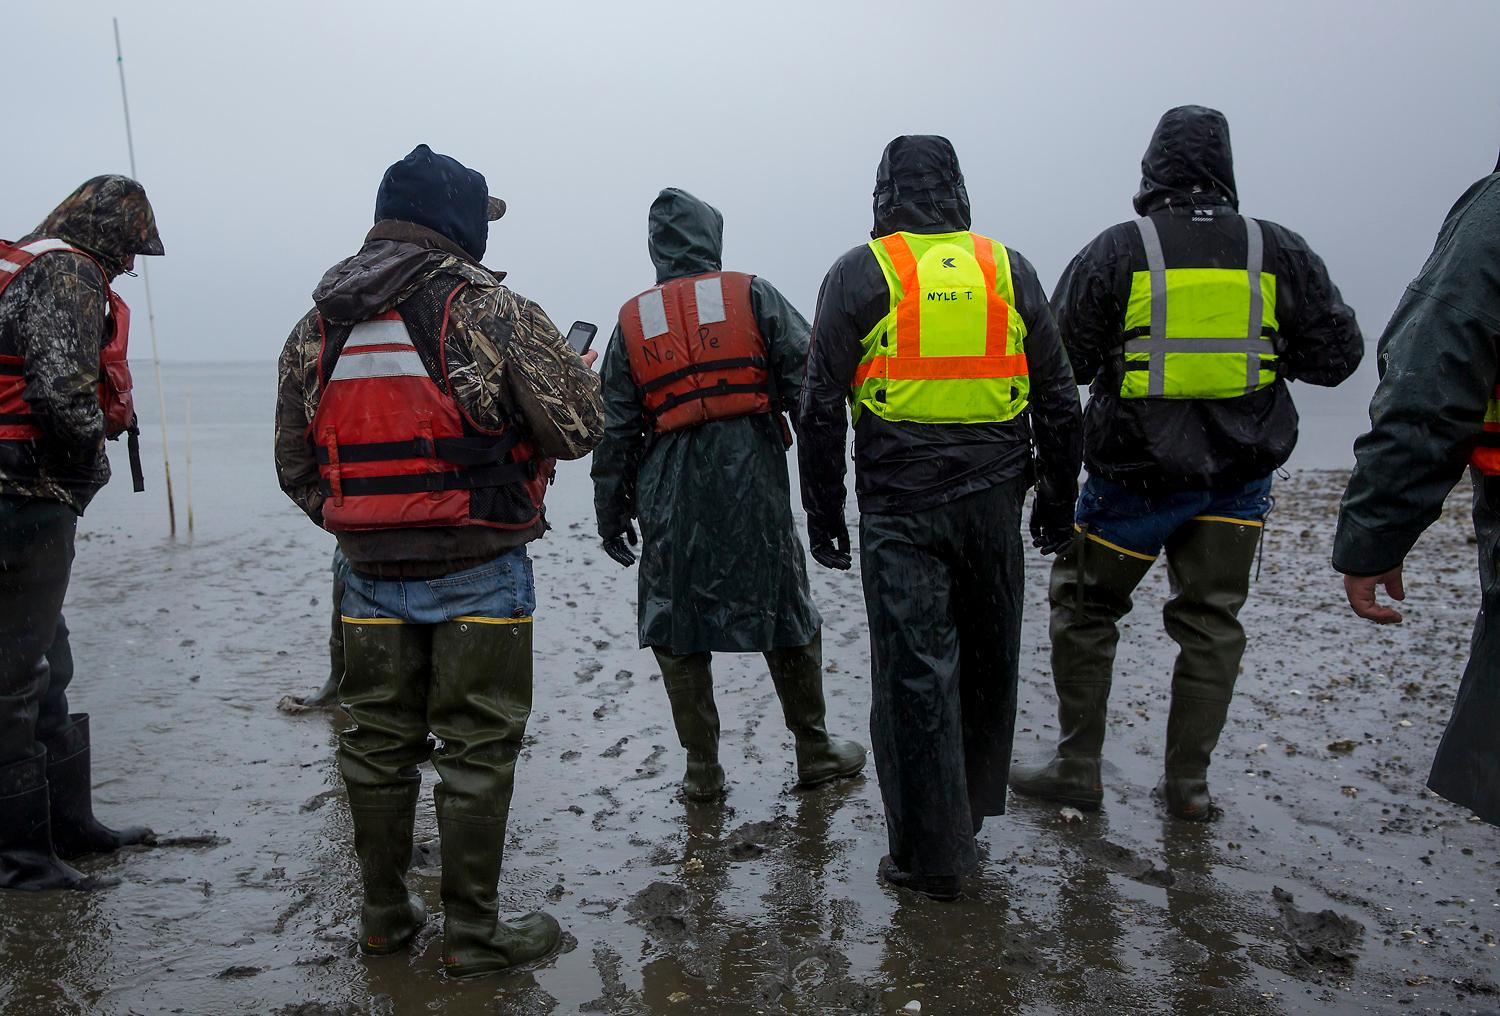 Workers wait to board a boat that will take them out into Samish bay to tour the oysters and clams from Taylor Shellfish Farms. The company has its roots in shellfish farming in Washington State since the 1890s, and is now a proud leader of sustainable farming practices. (Sy Bean / Seattle Refined)